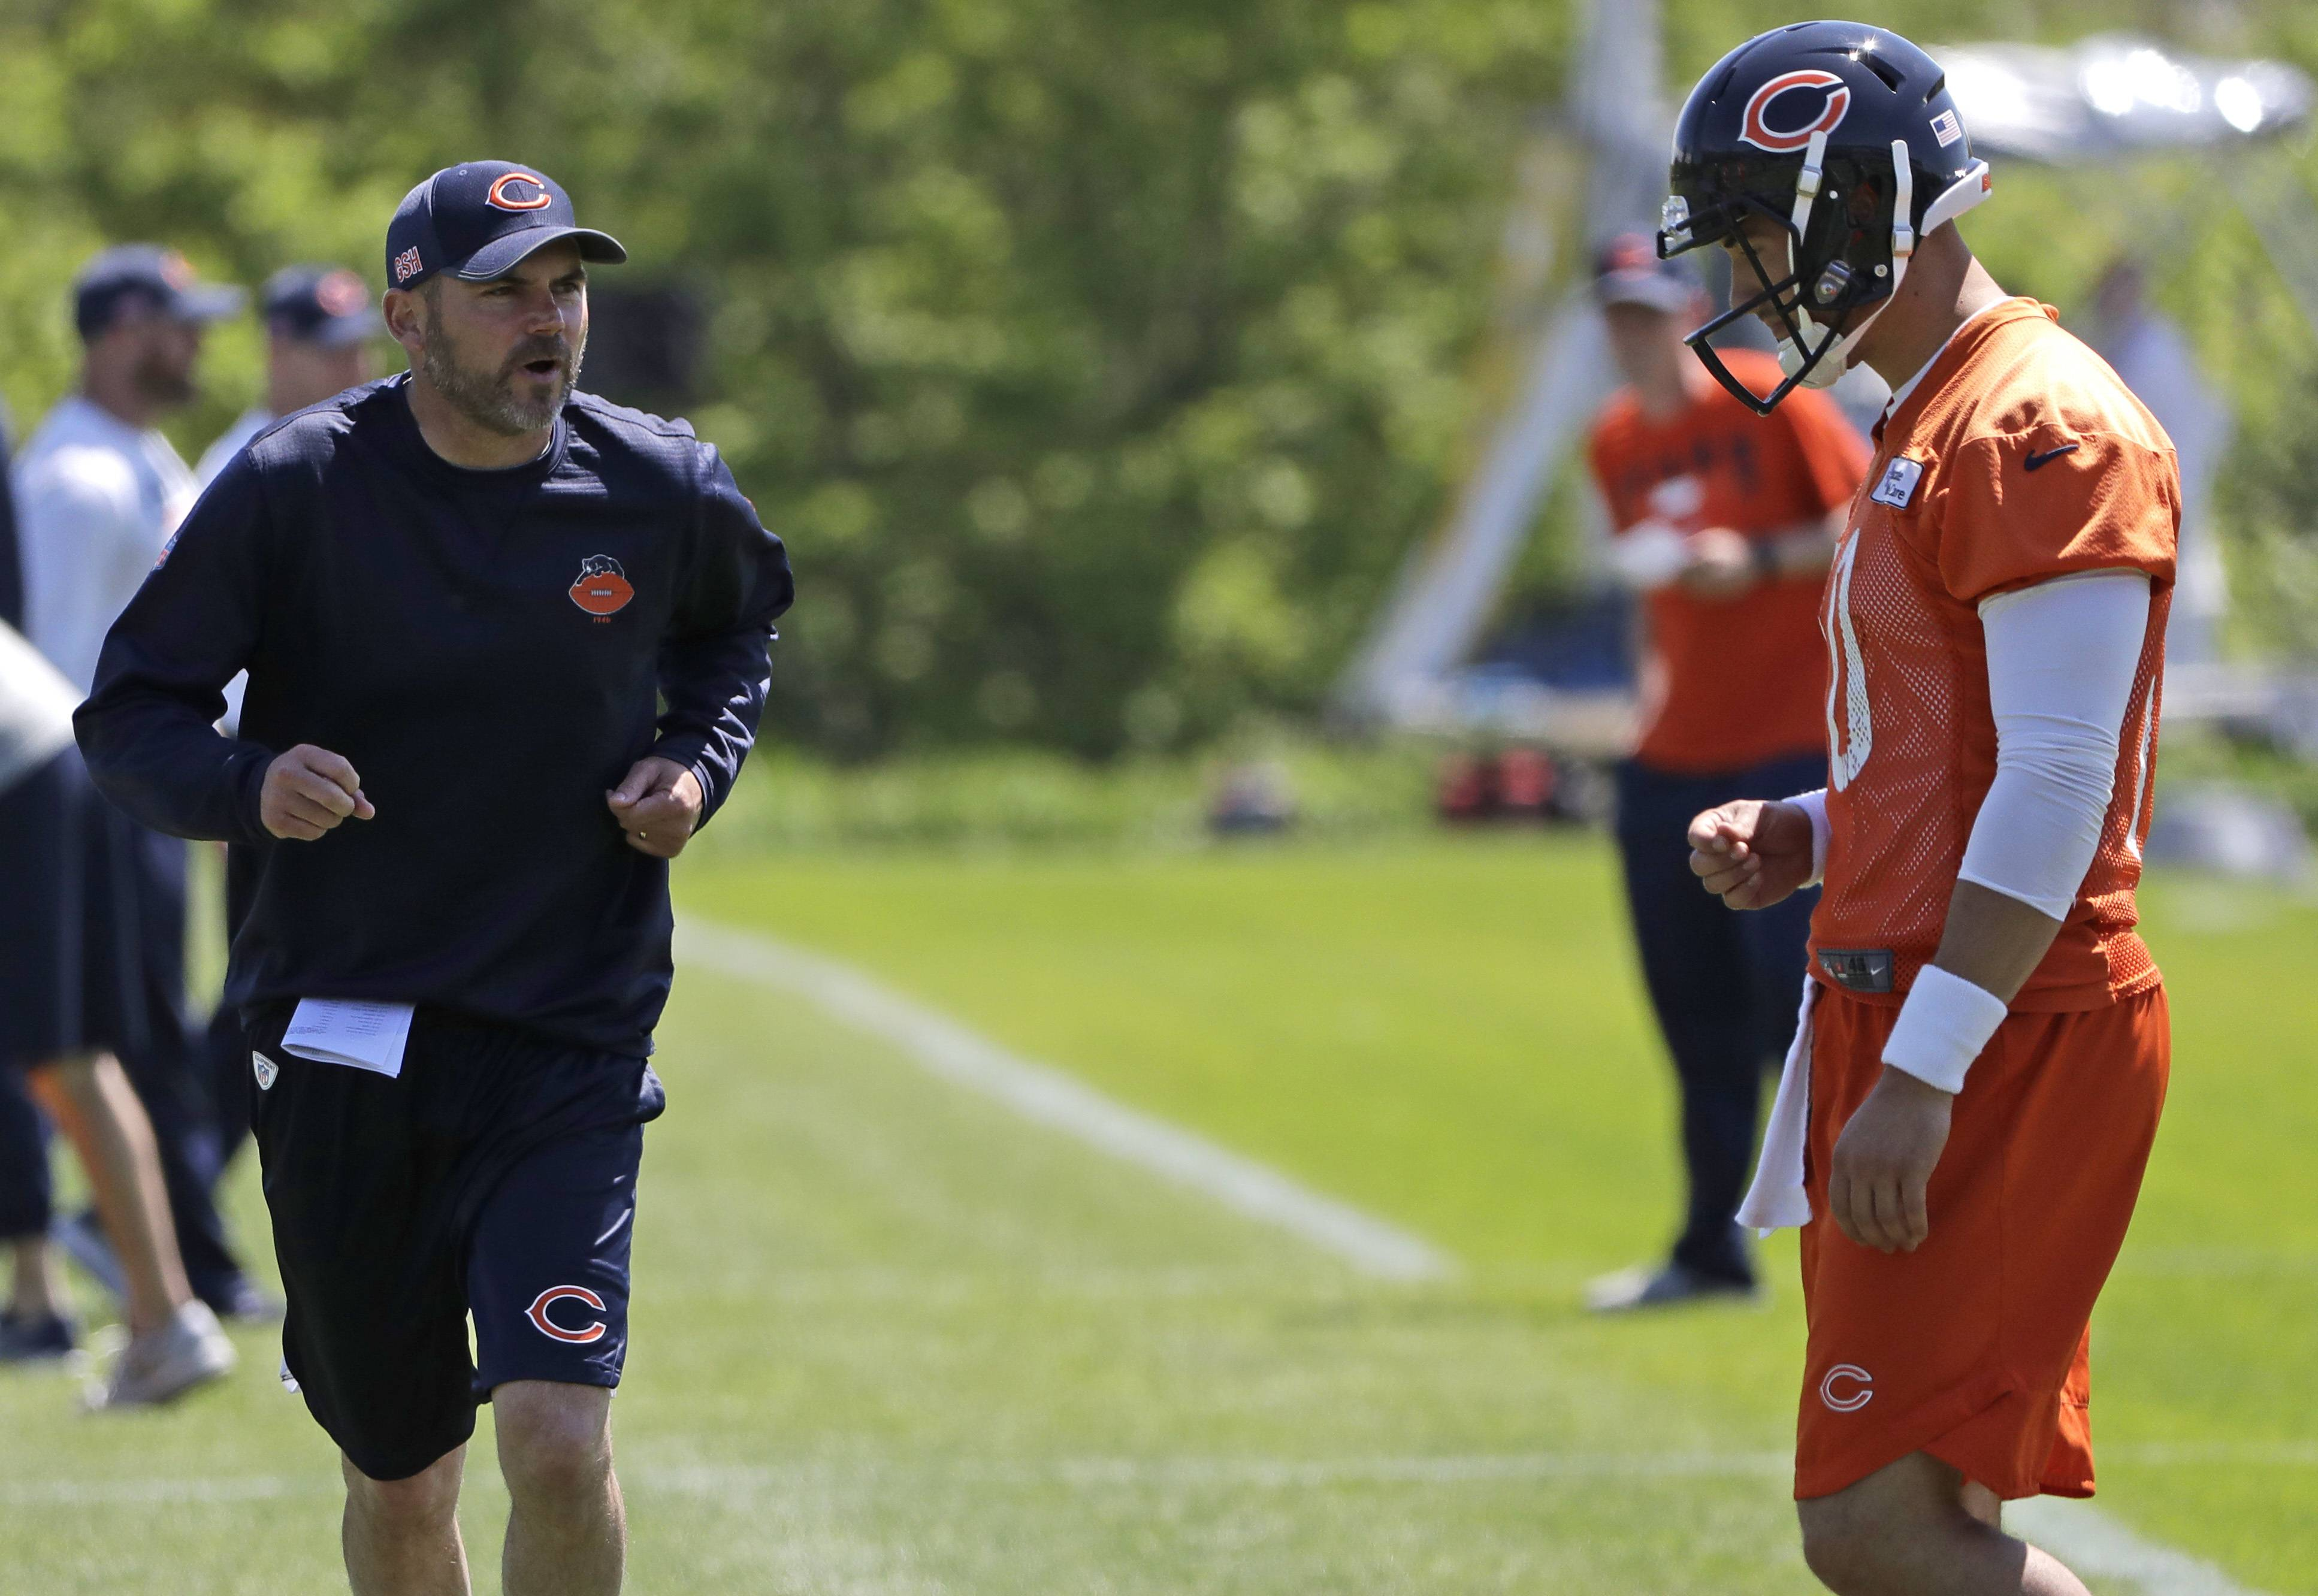 OC Mark Helfrich finding his way in Chicago Bears offense